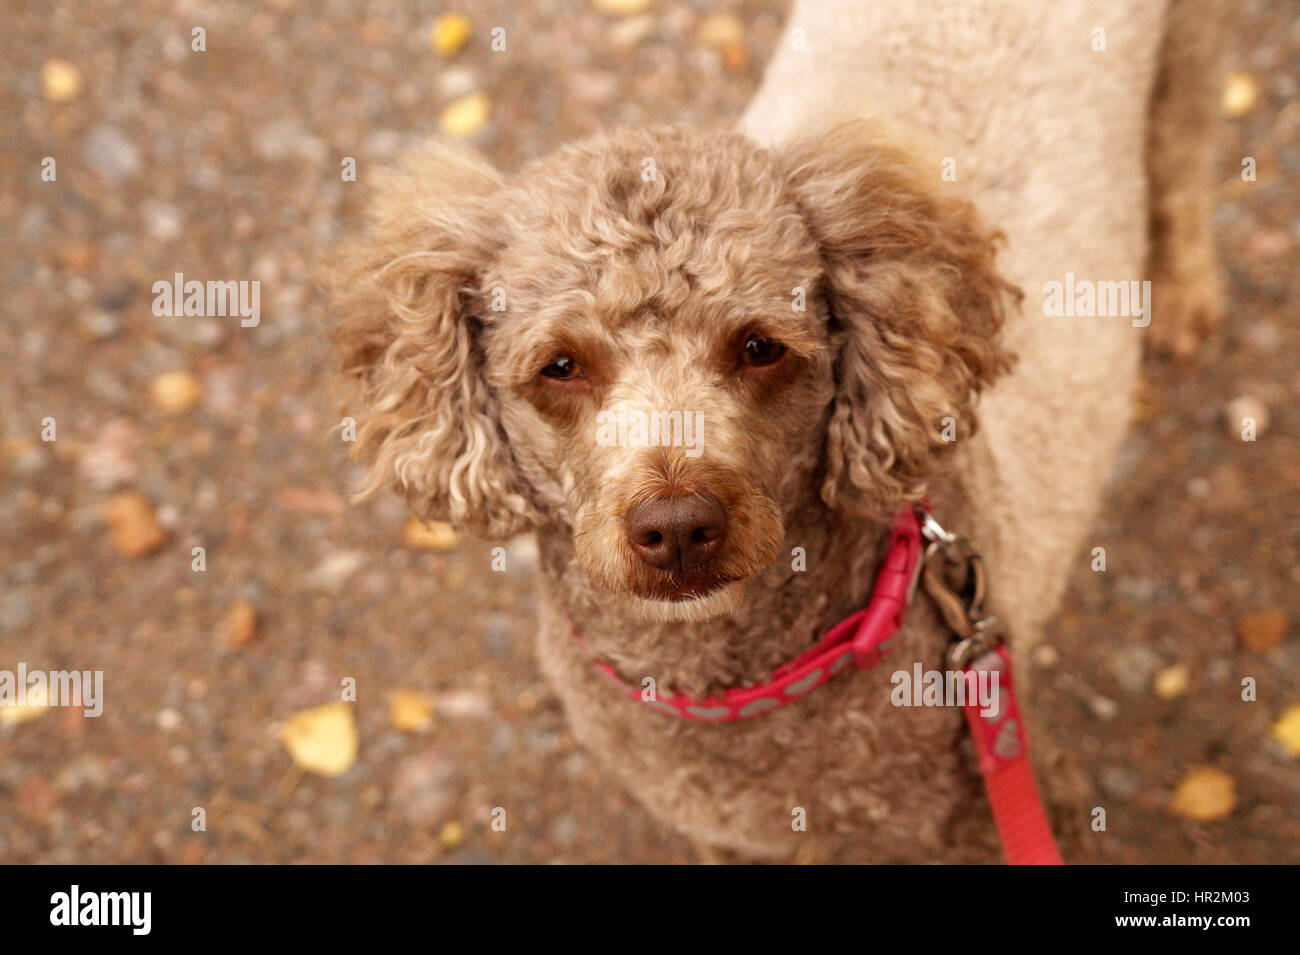 Cute Poodle Looking at the Camera - Stock Image